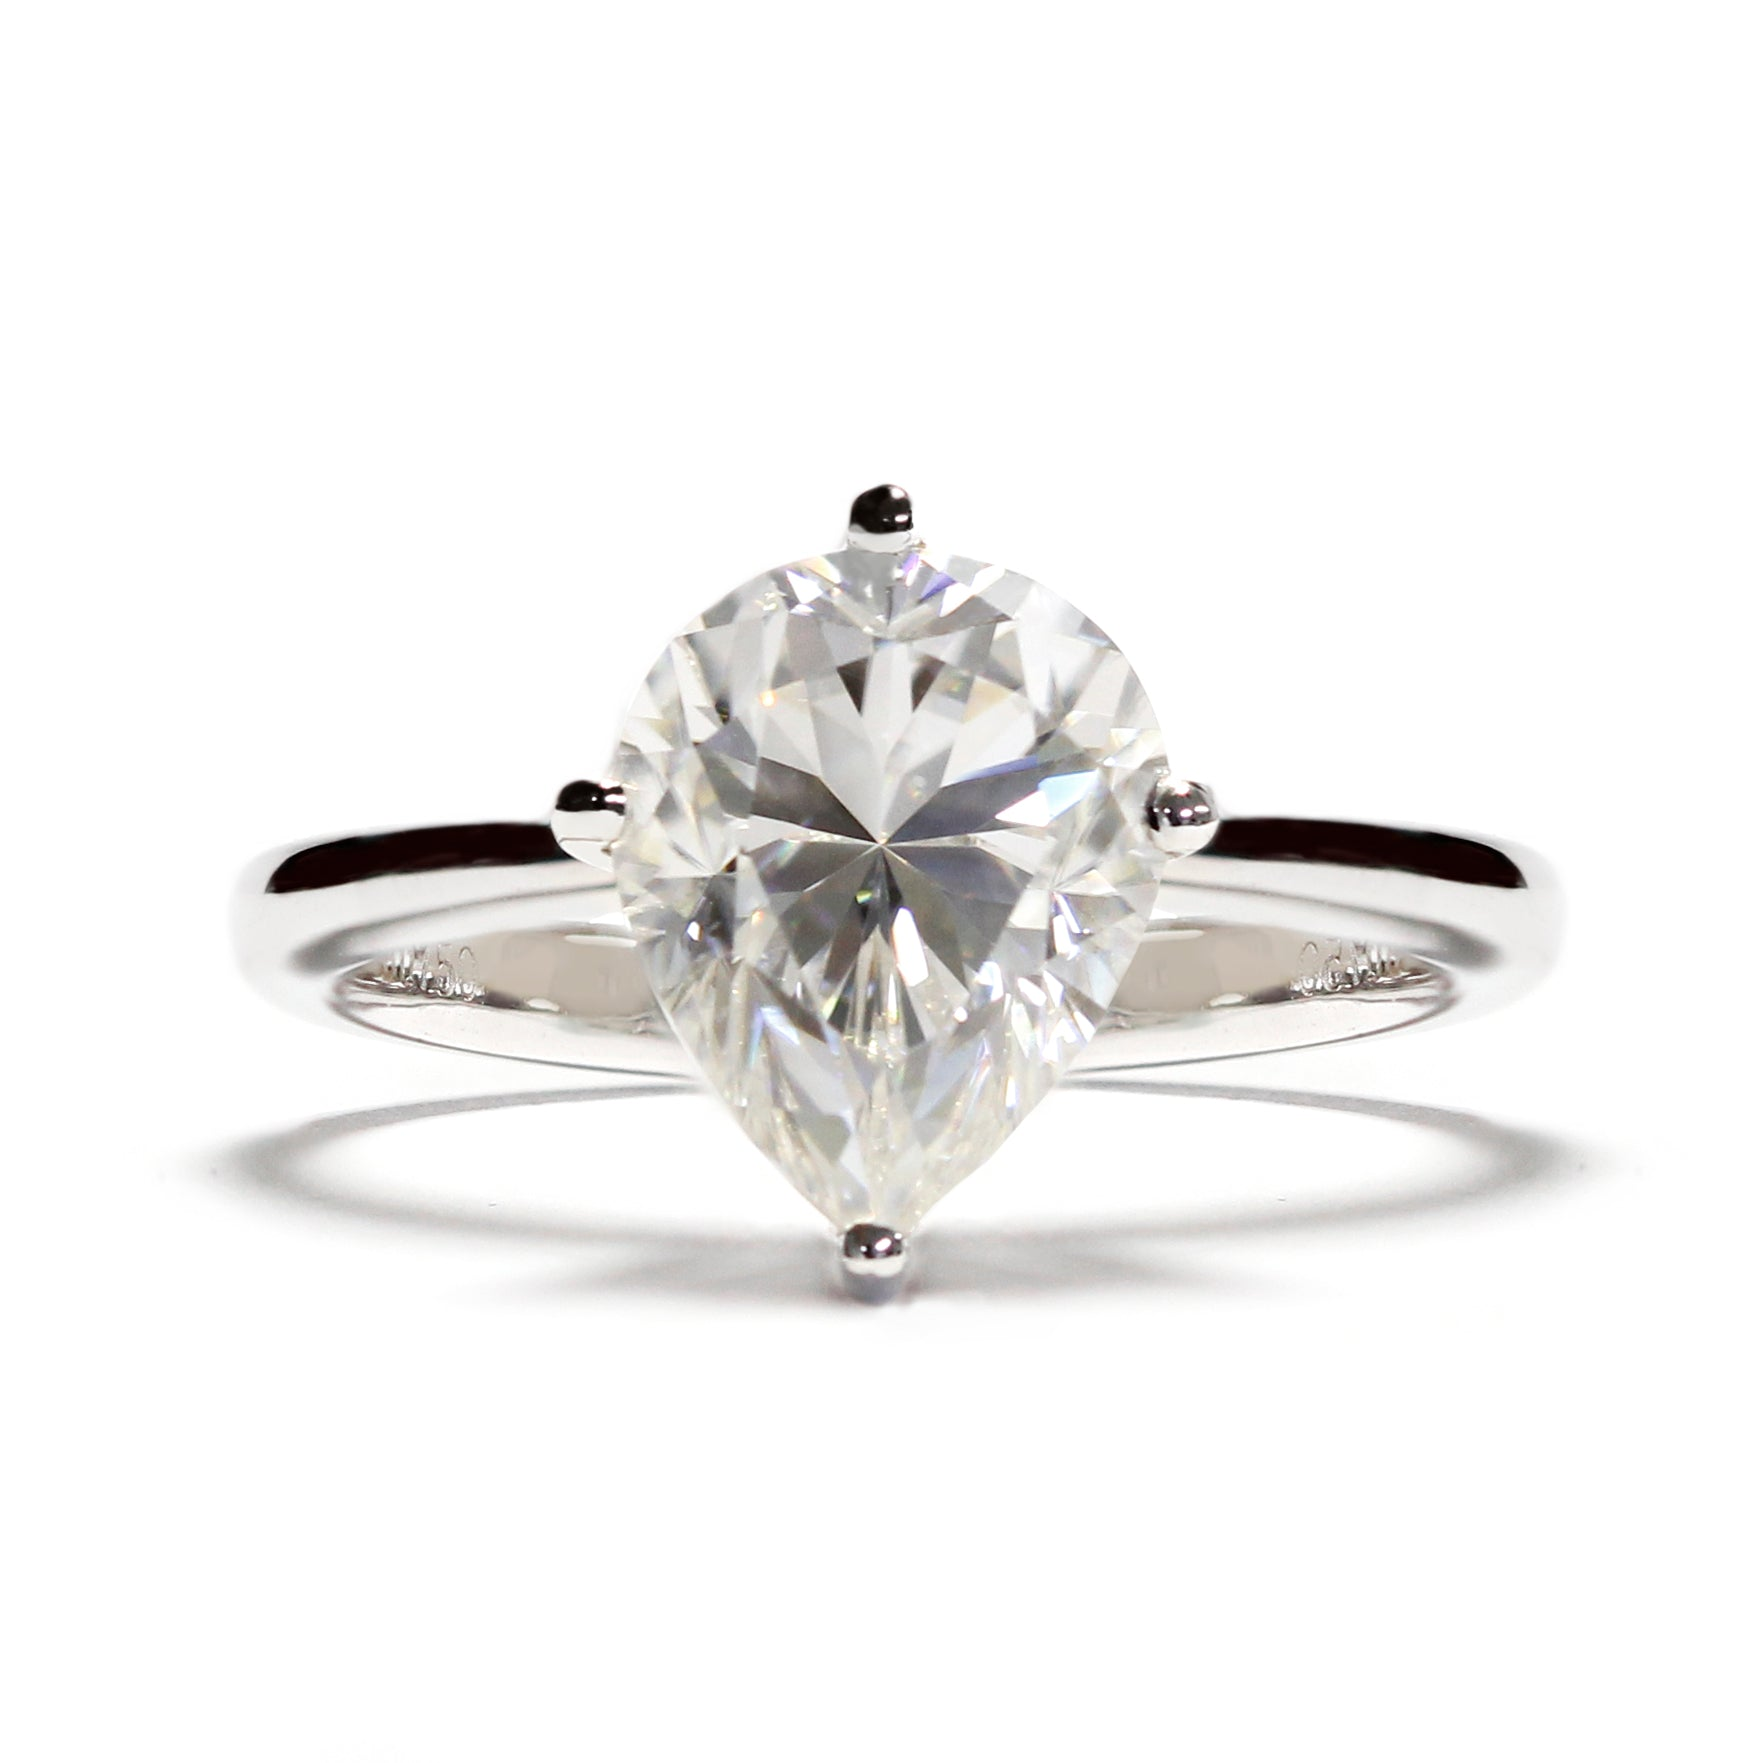 Pear Moissanite Solitaire on 18K White Gold Ring - LeCaine Gems